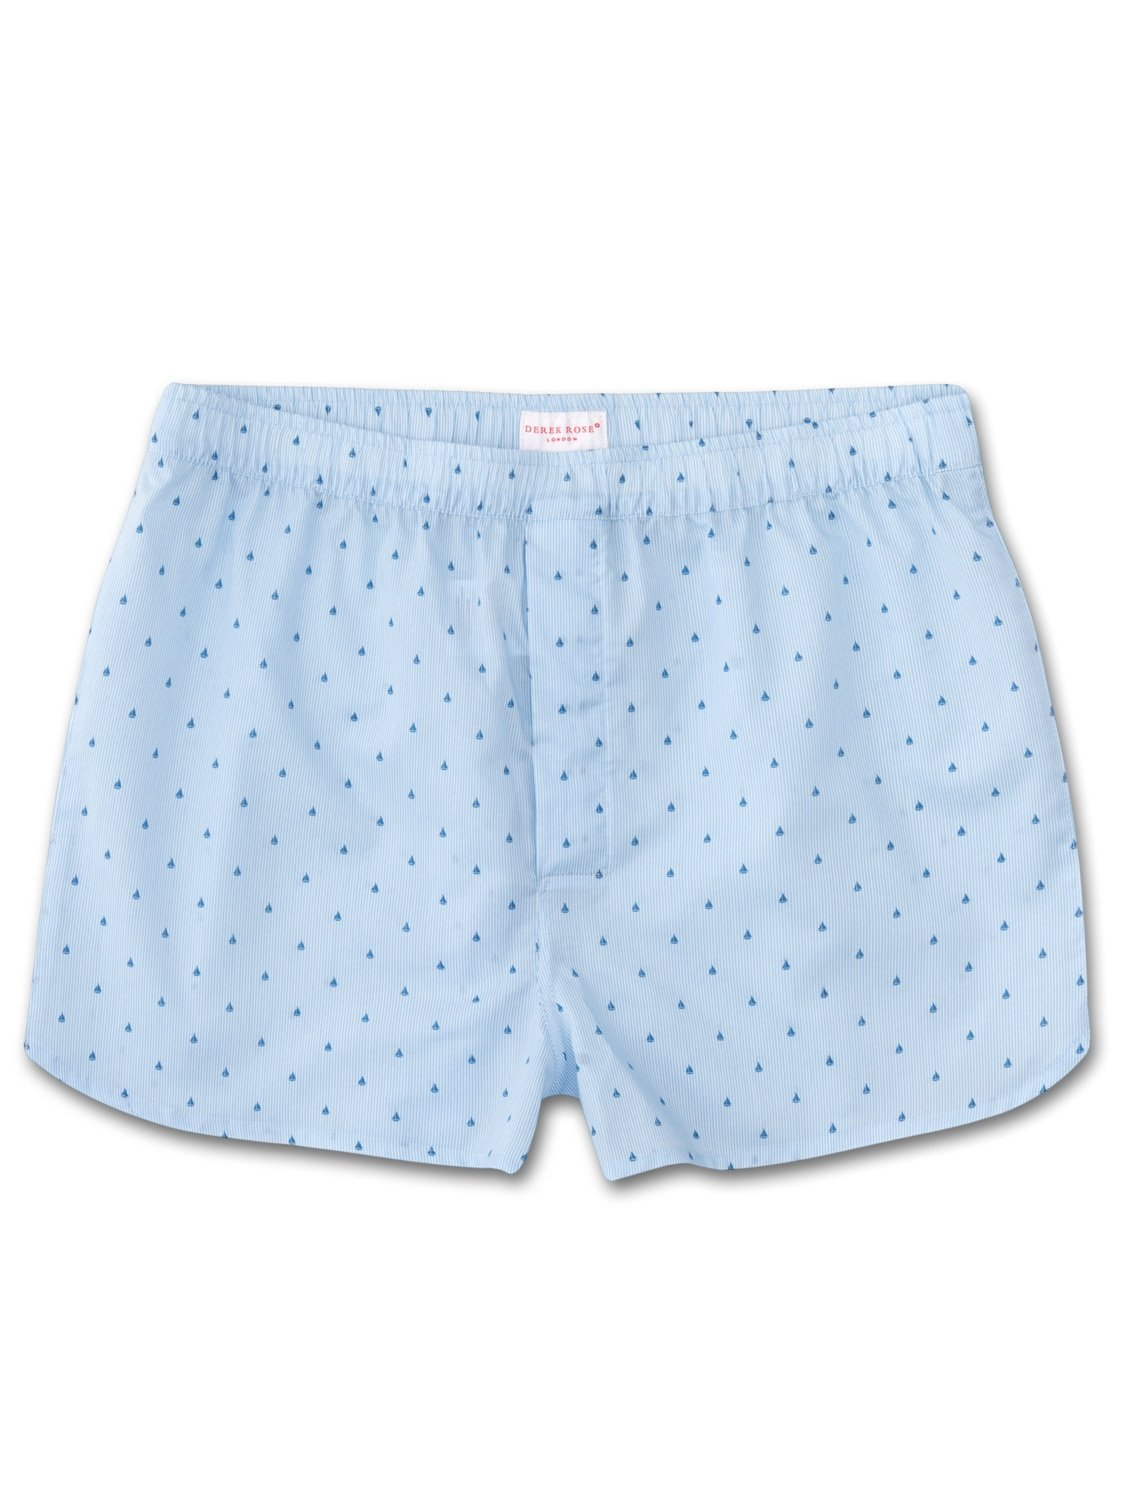 Men's Modern Fit Boxer Shorts Nelson 63 Cotton Batiste Blue